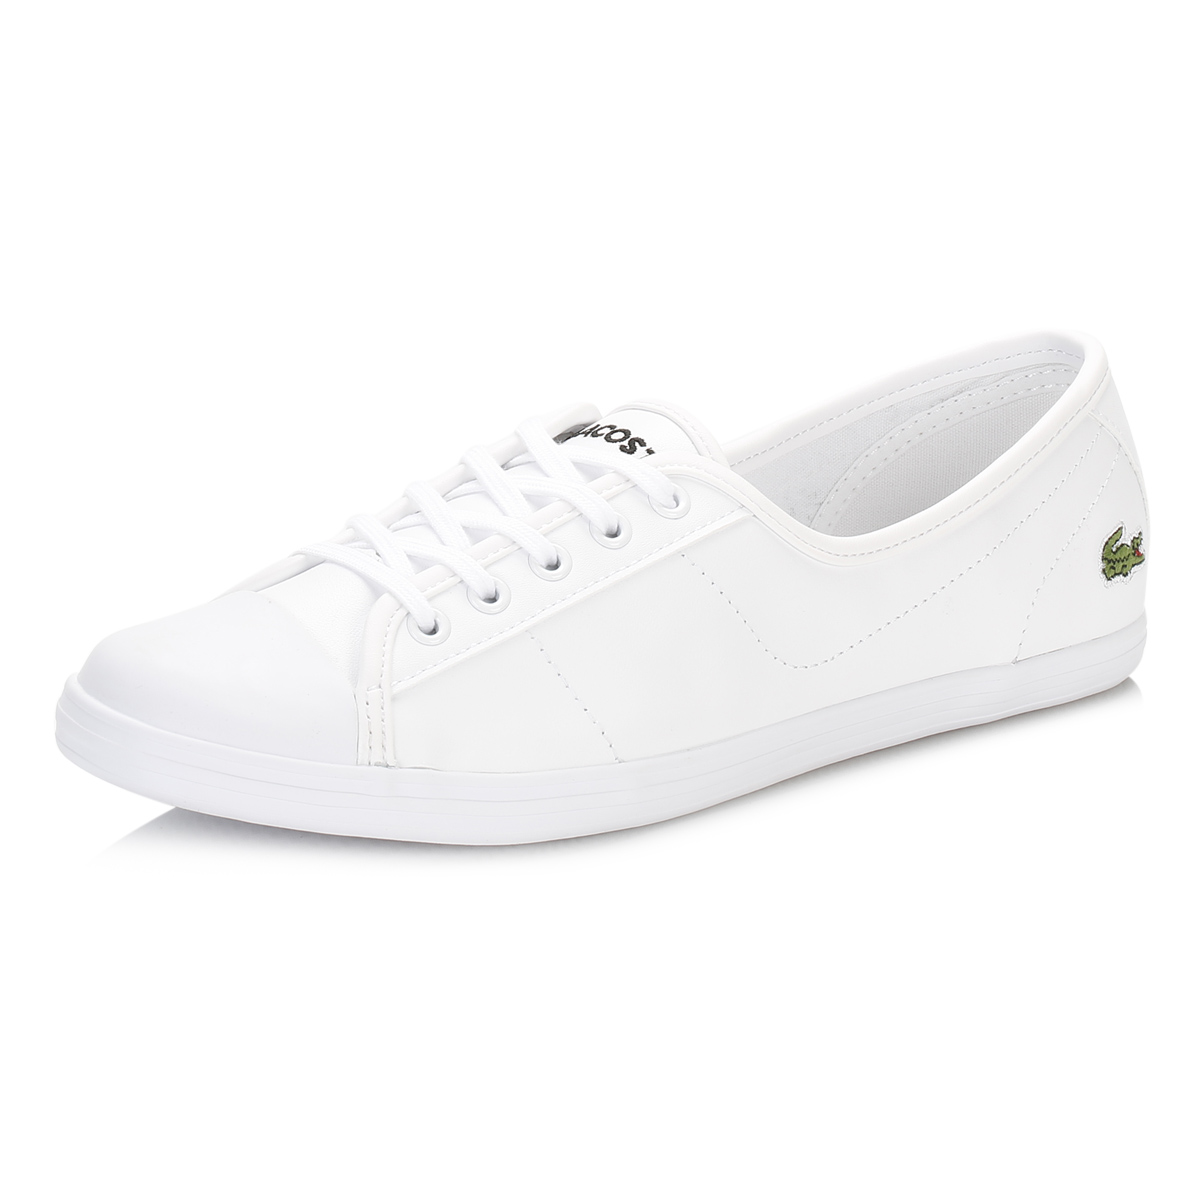 1f69543b56e0d Details about Lacoste Womens Trainers White Ziane BL 1 SPW Leather Lace Up  Shoes Casual Flats